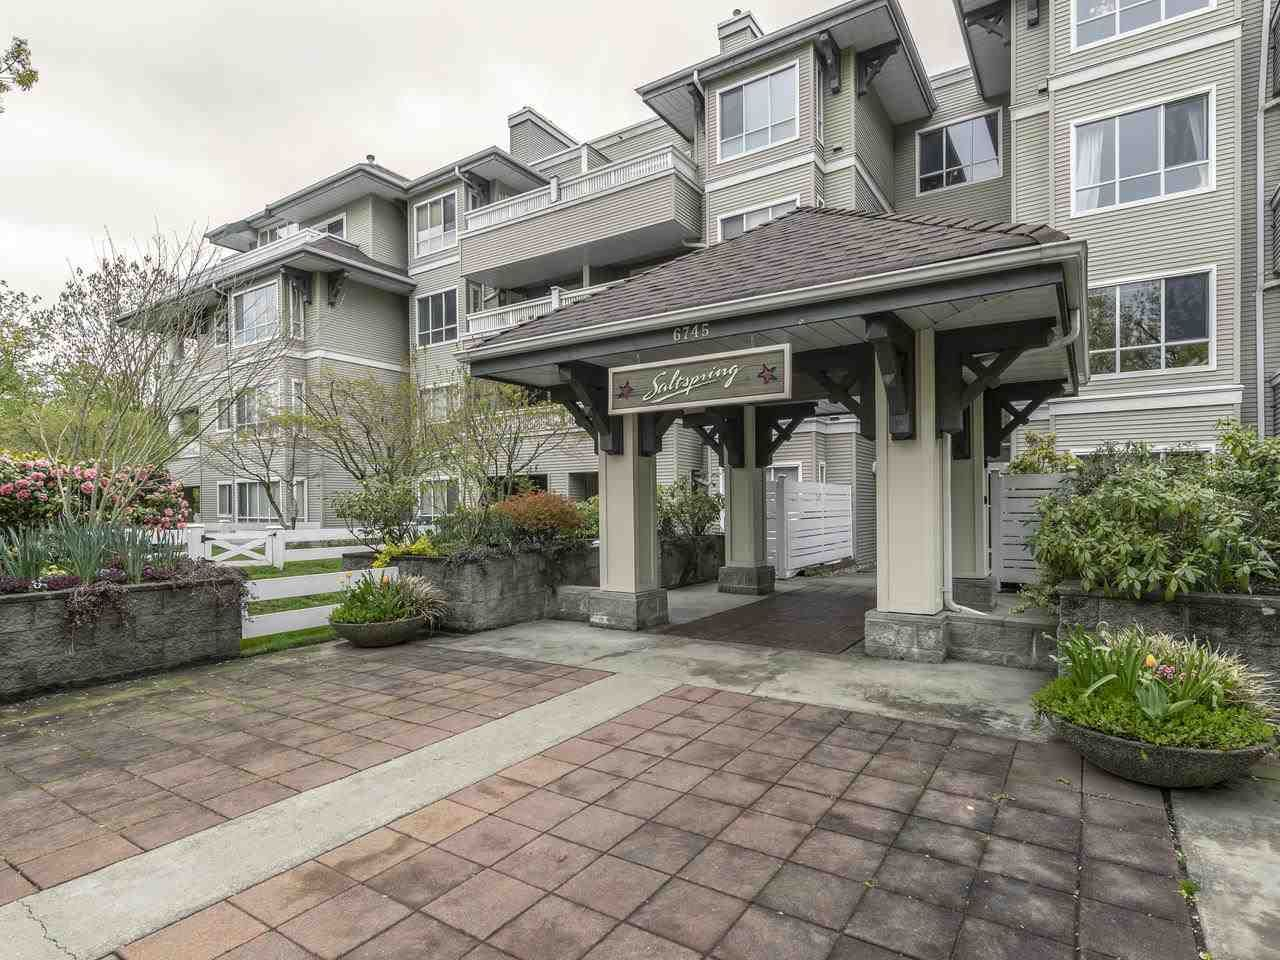 Main Photo: 404 6745 STATION HILL COURT in Burnaby: South Slope Condo for sale (Burnaby South)  : MLS®# R2445660